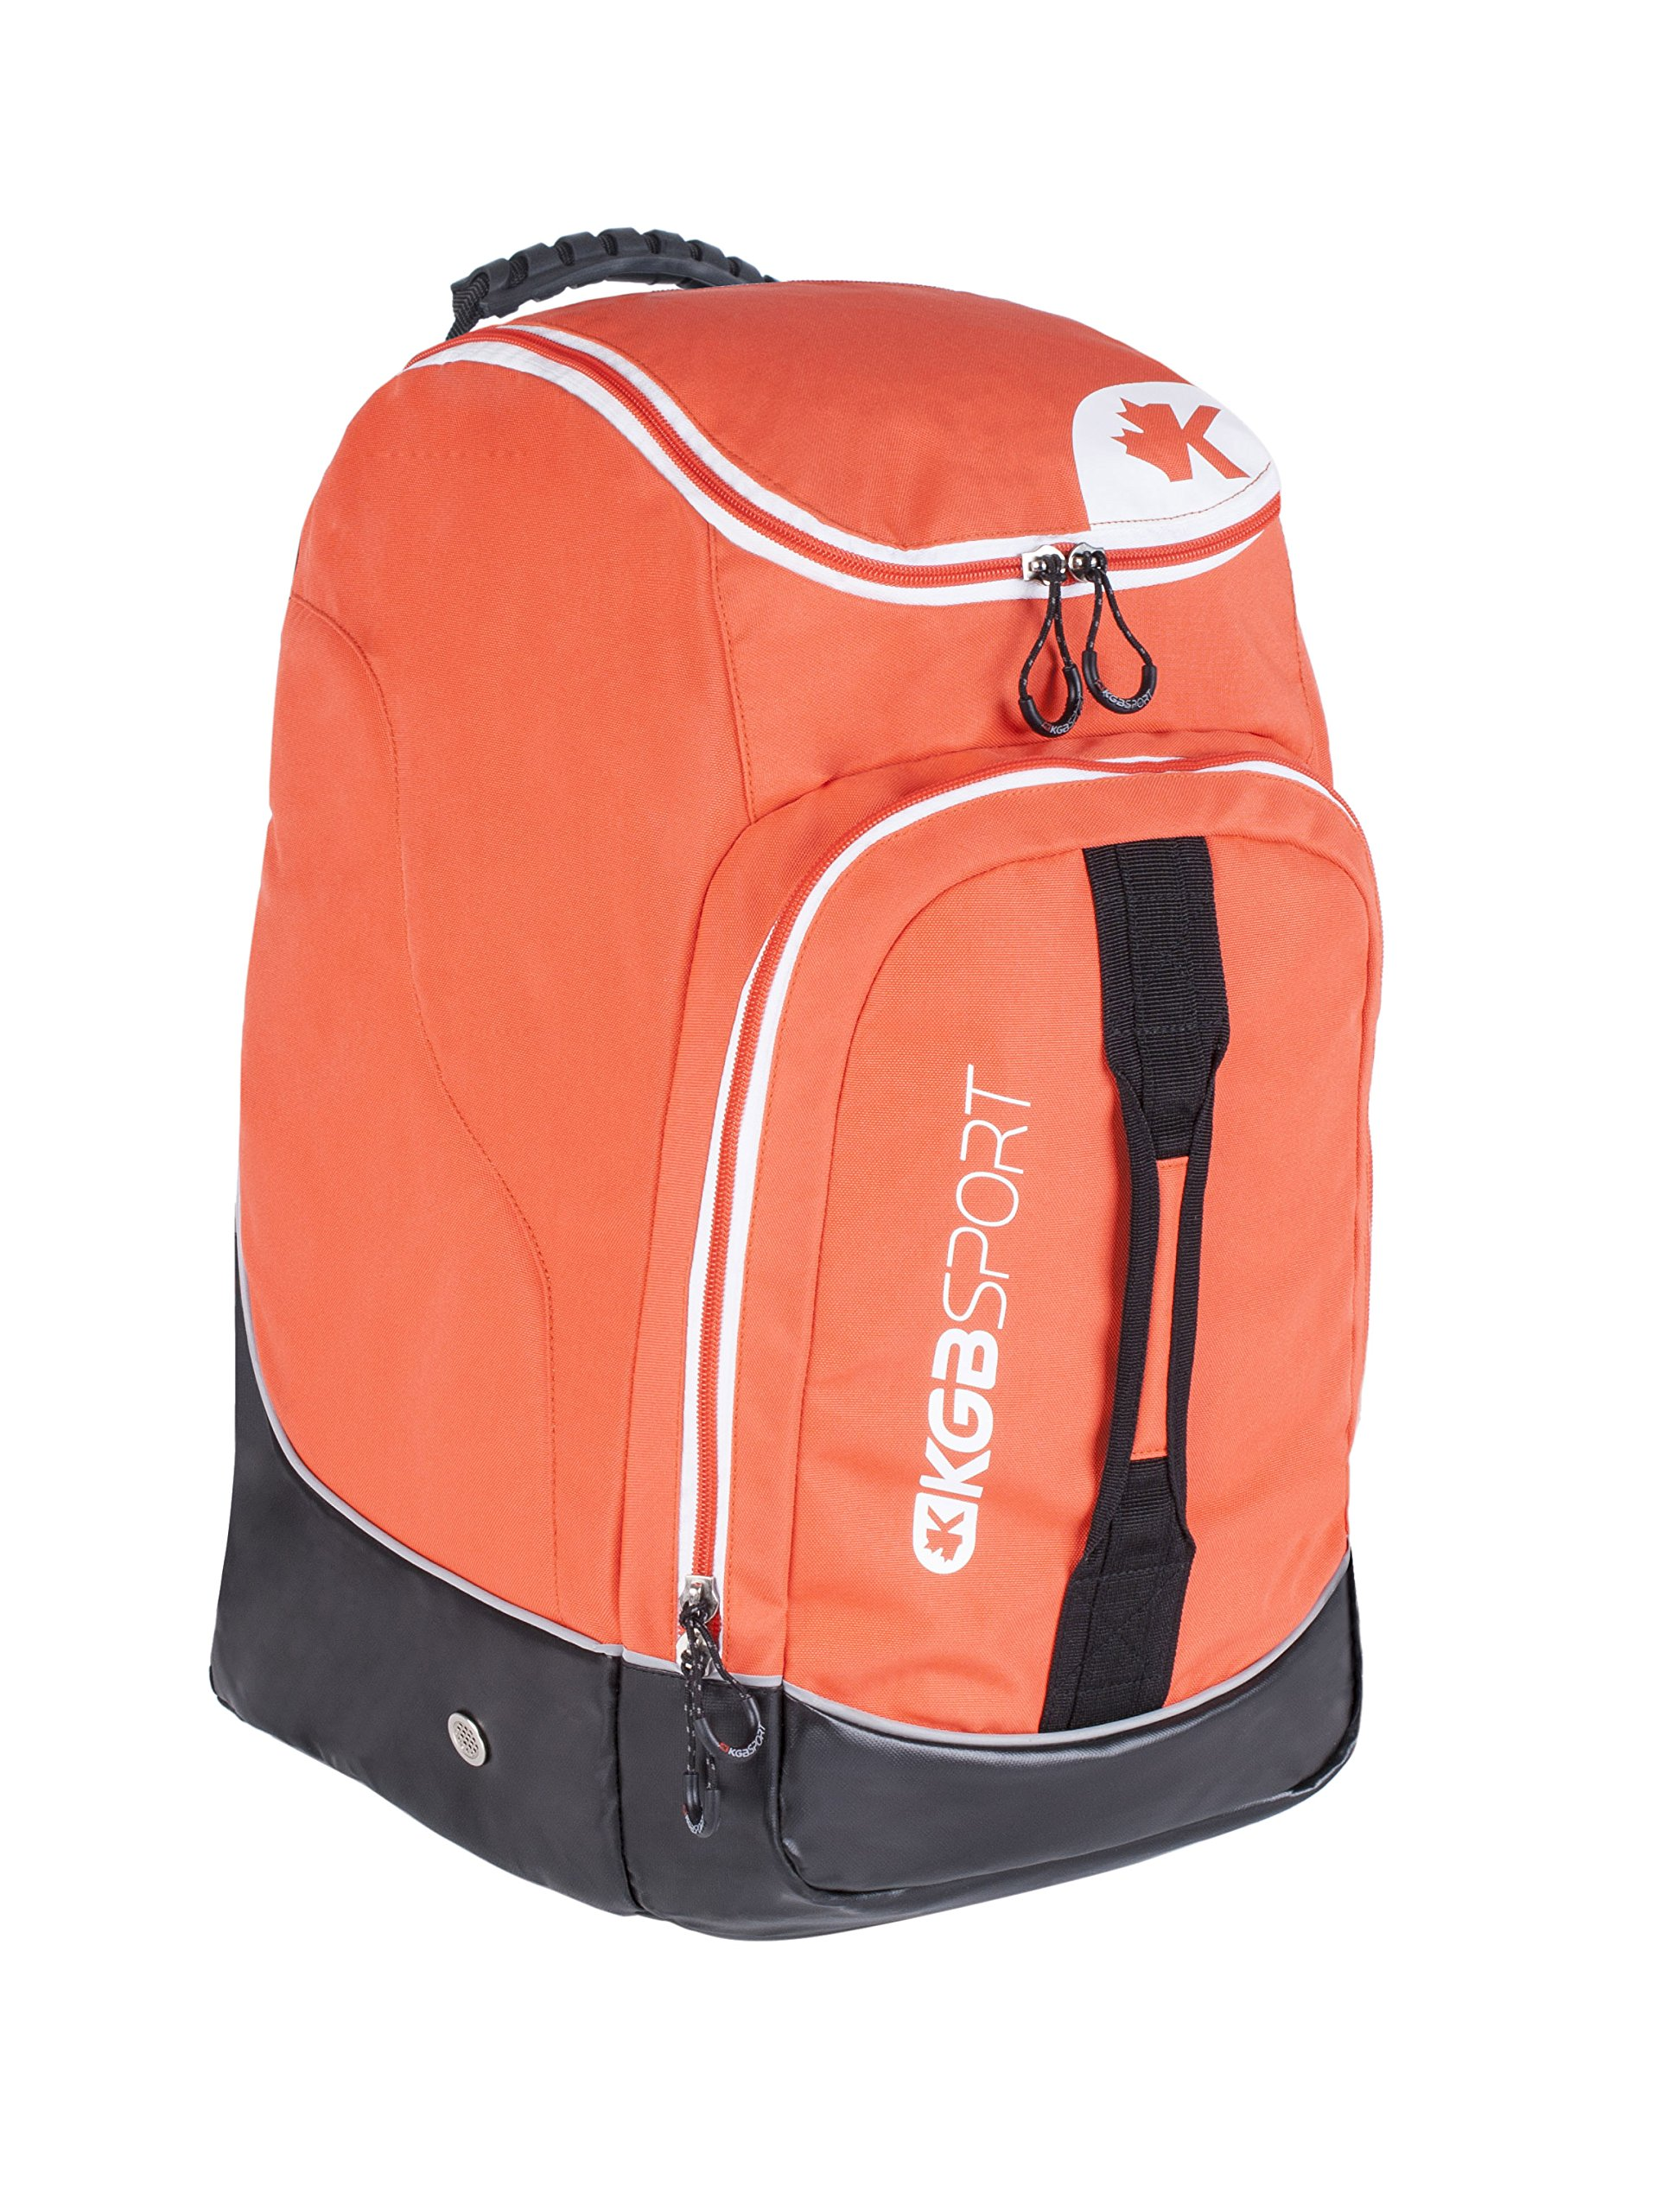 Boot Pack, Orange, One Size by KGB Sport